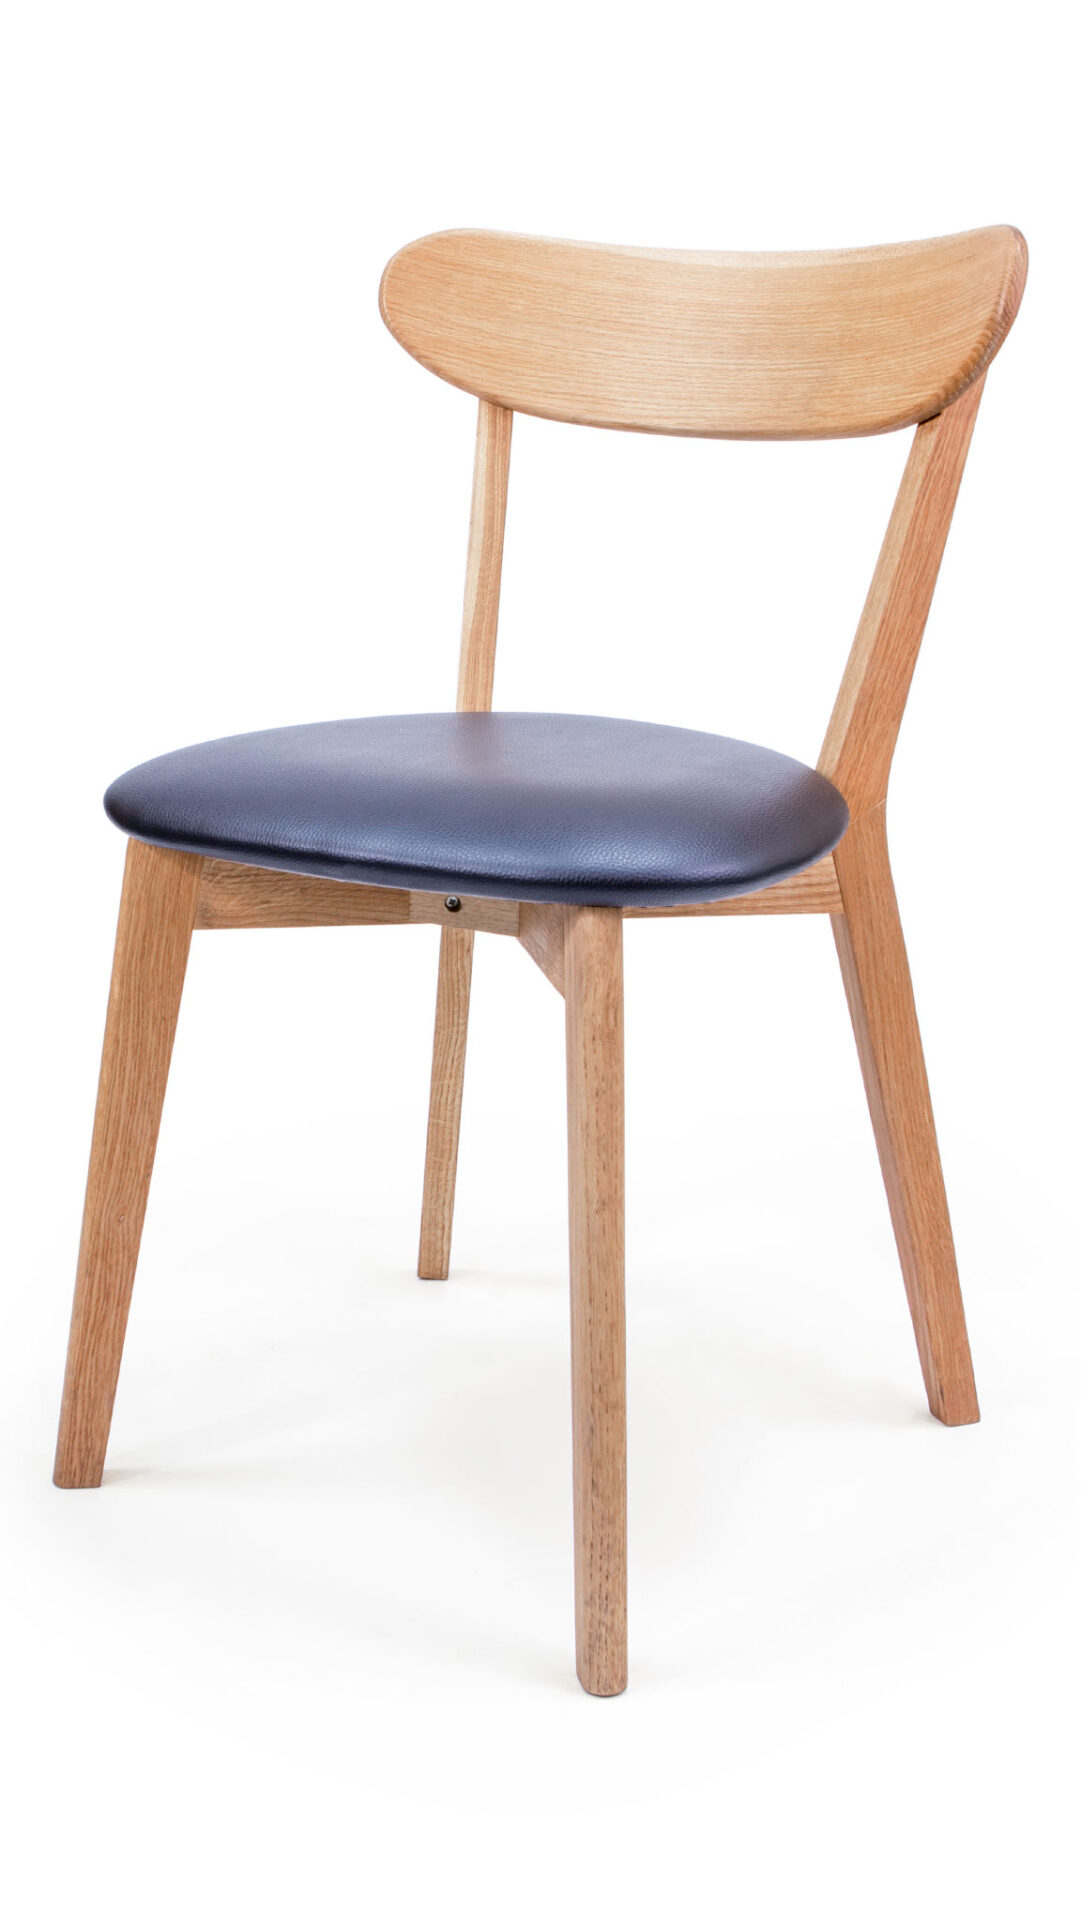 Solid Wood Chair made of Beech or Oak - 1321S